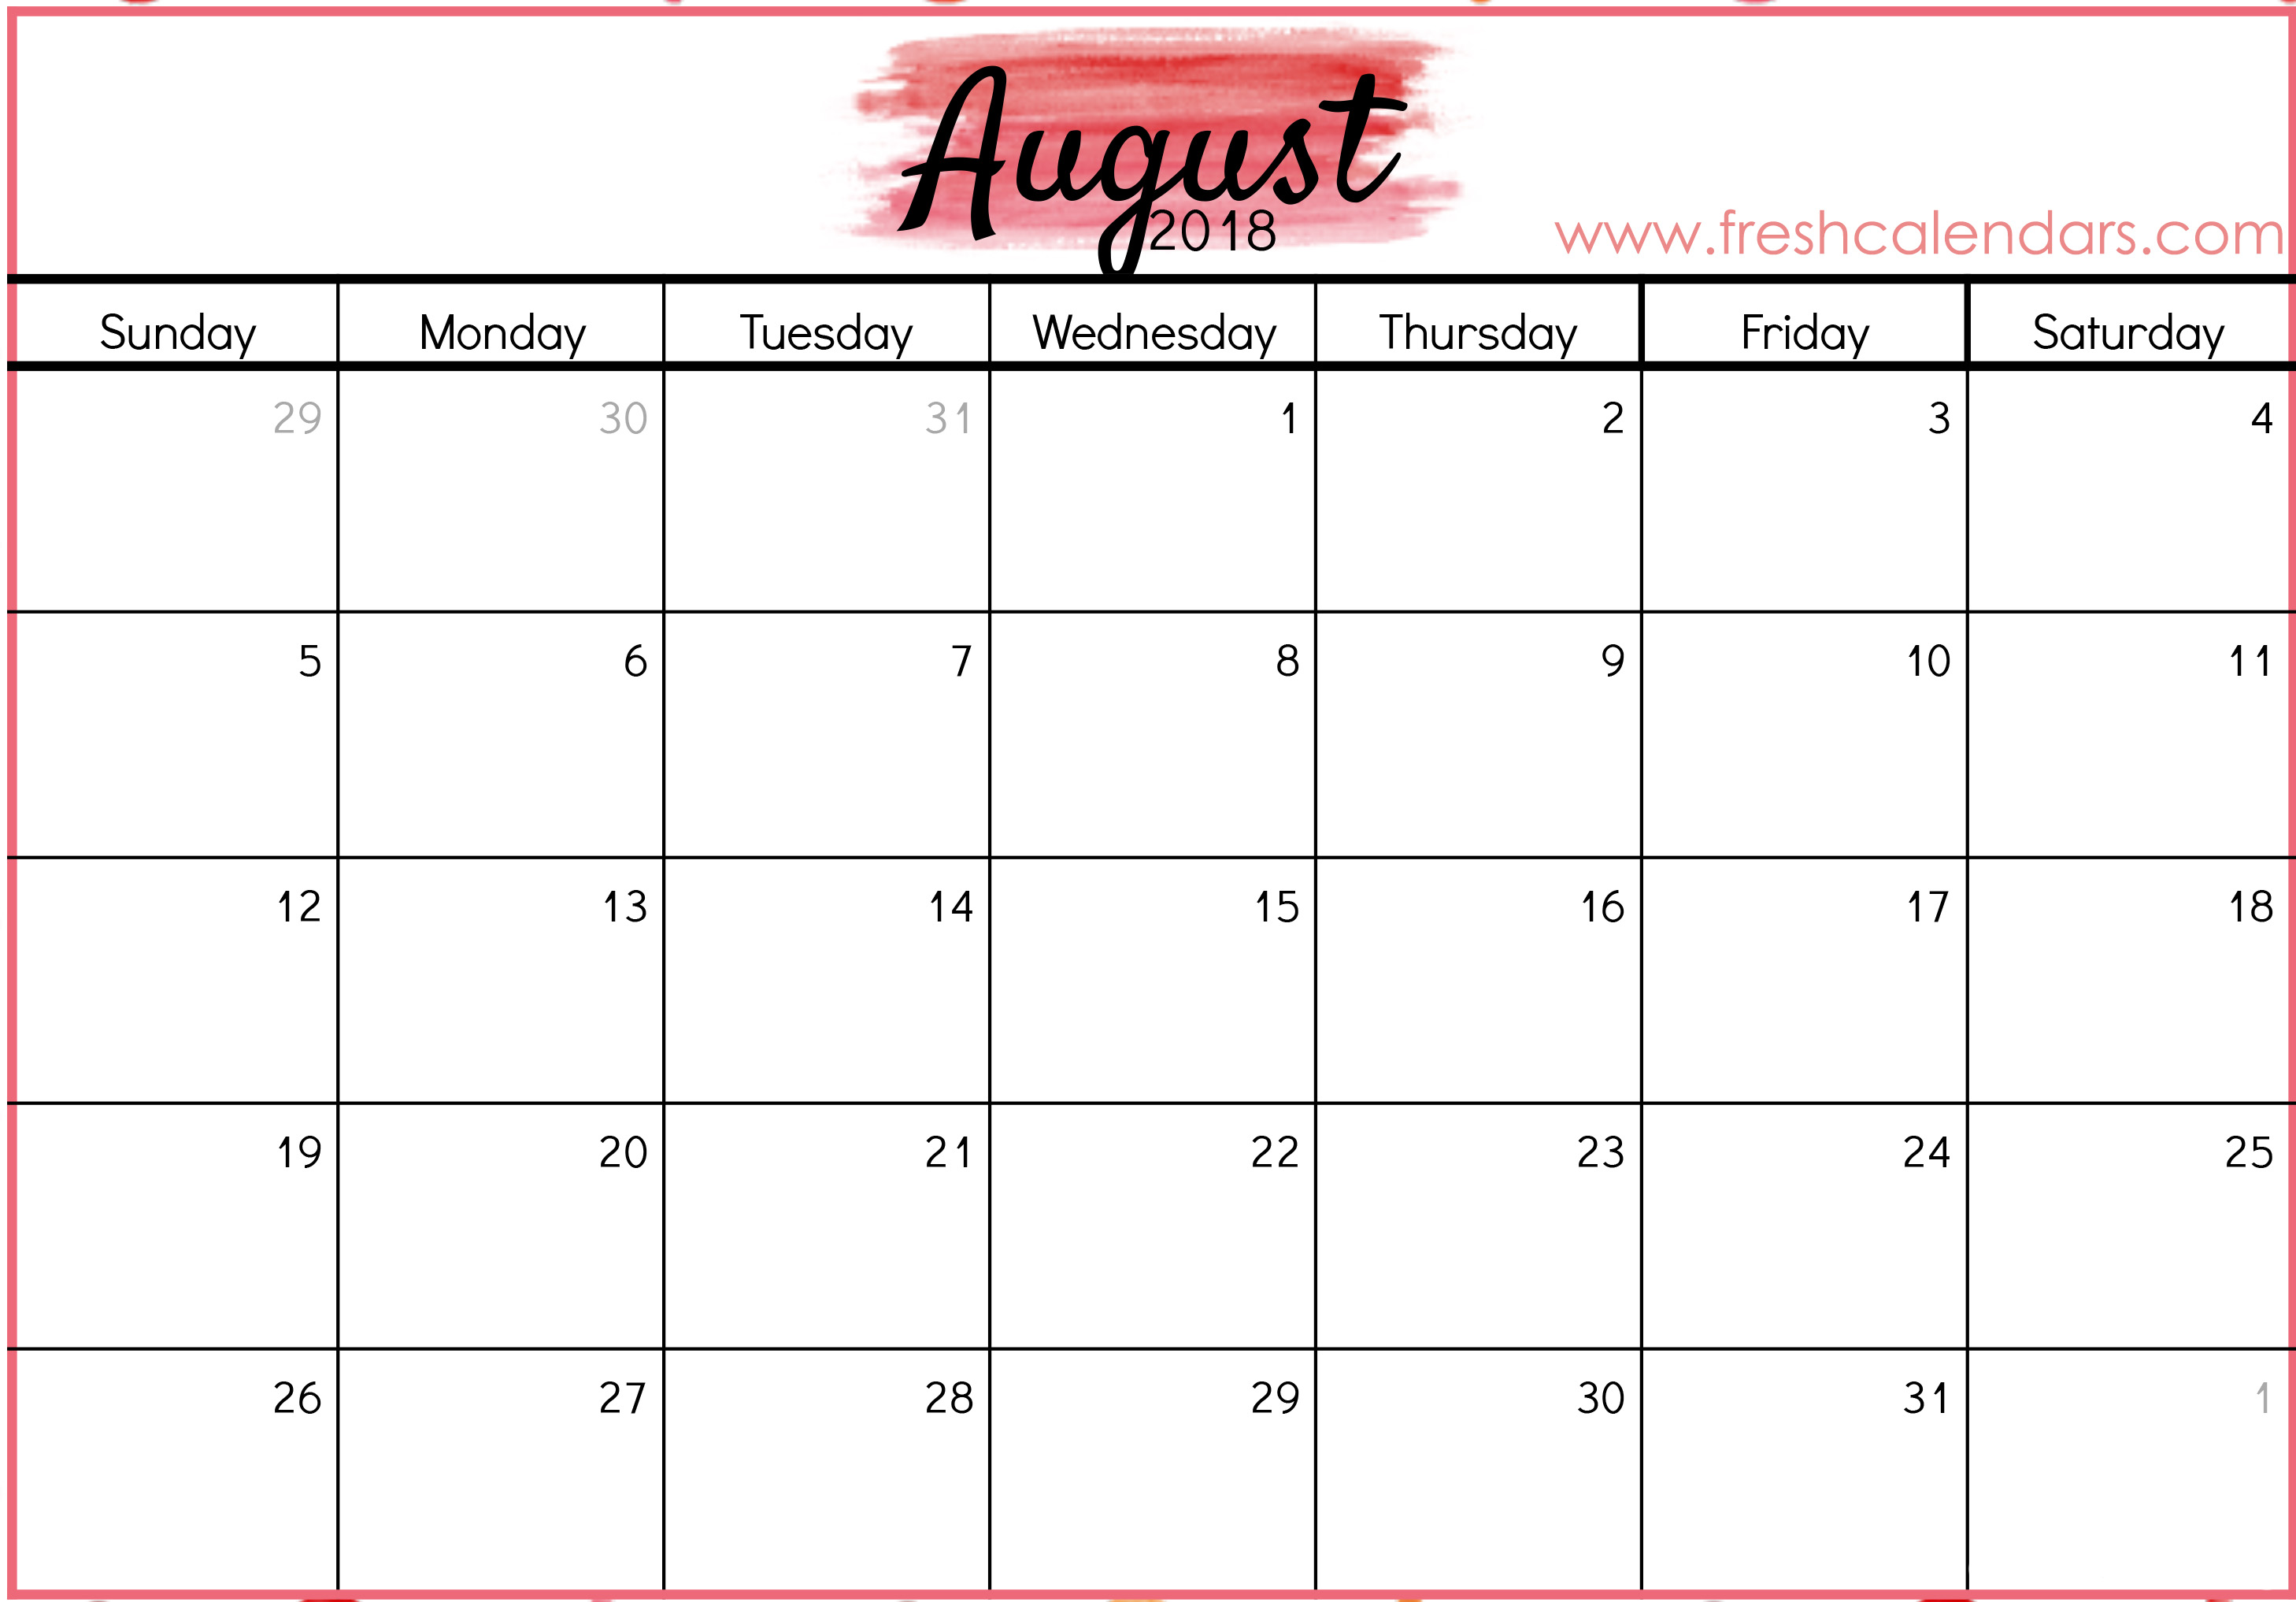 picture regarding Calendars Printable identified as August 2018 Calendar Printable - Refreshing Calendars